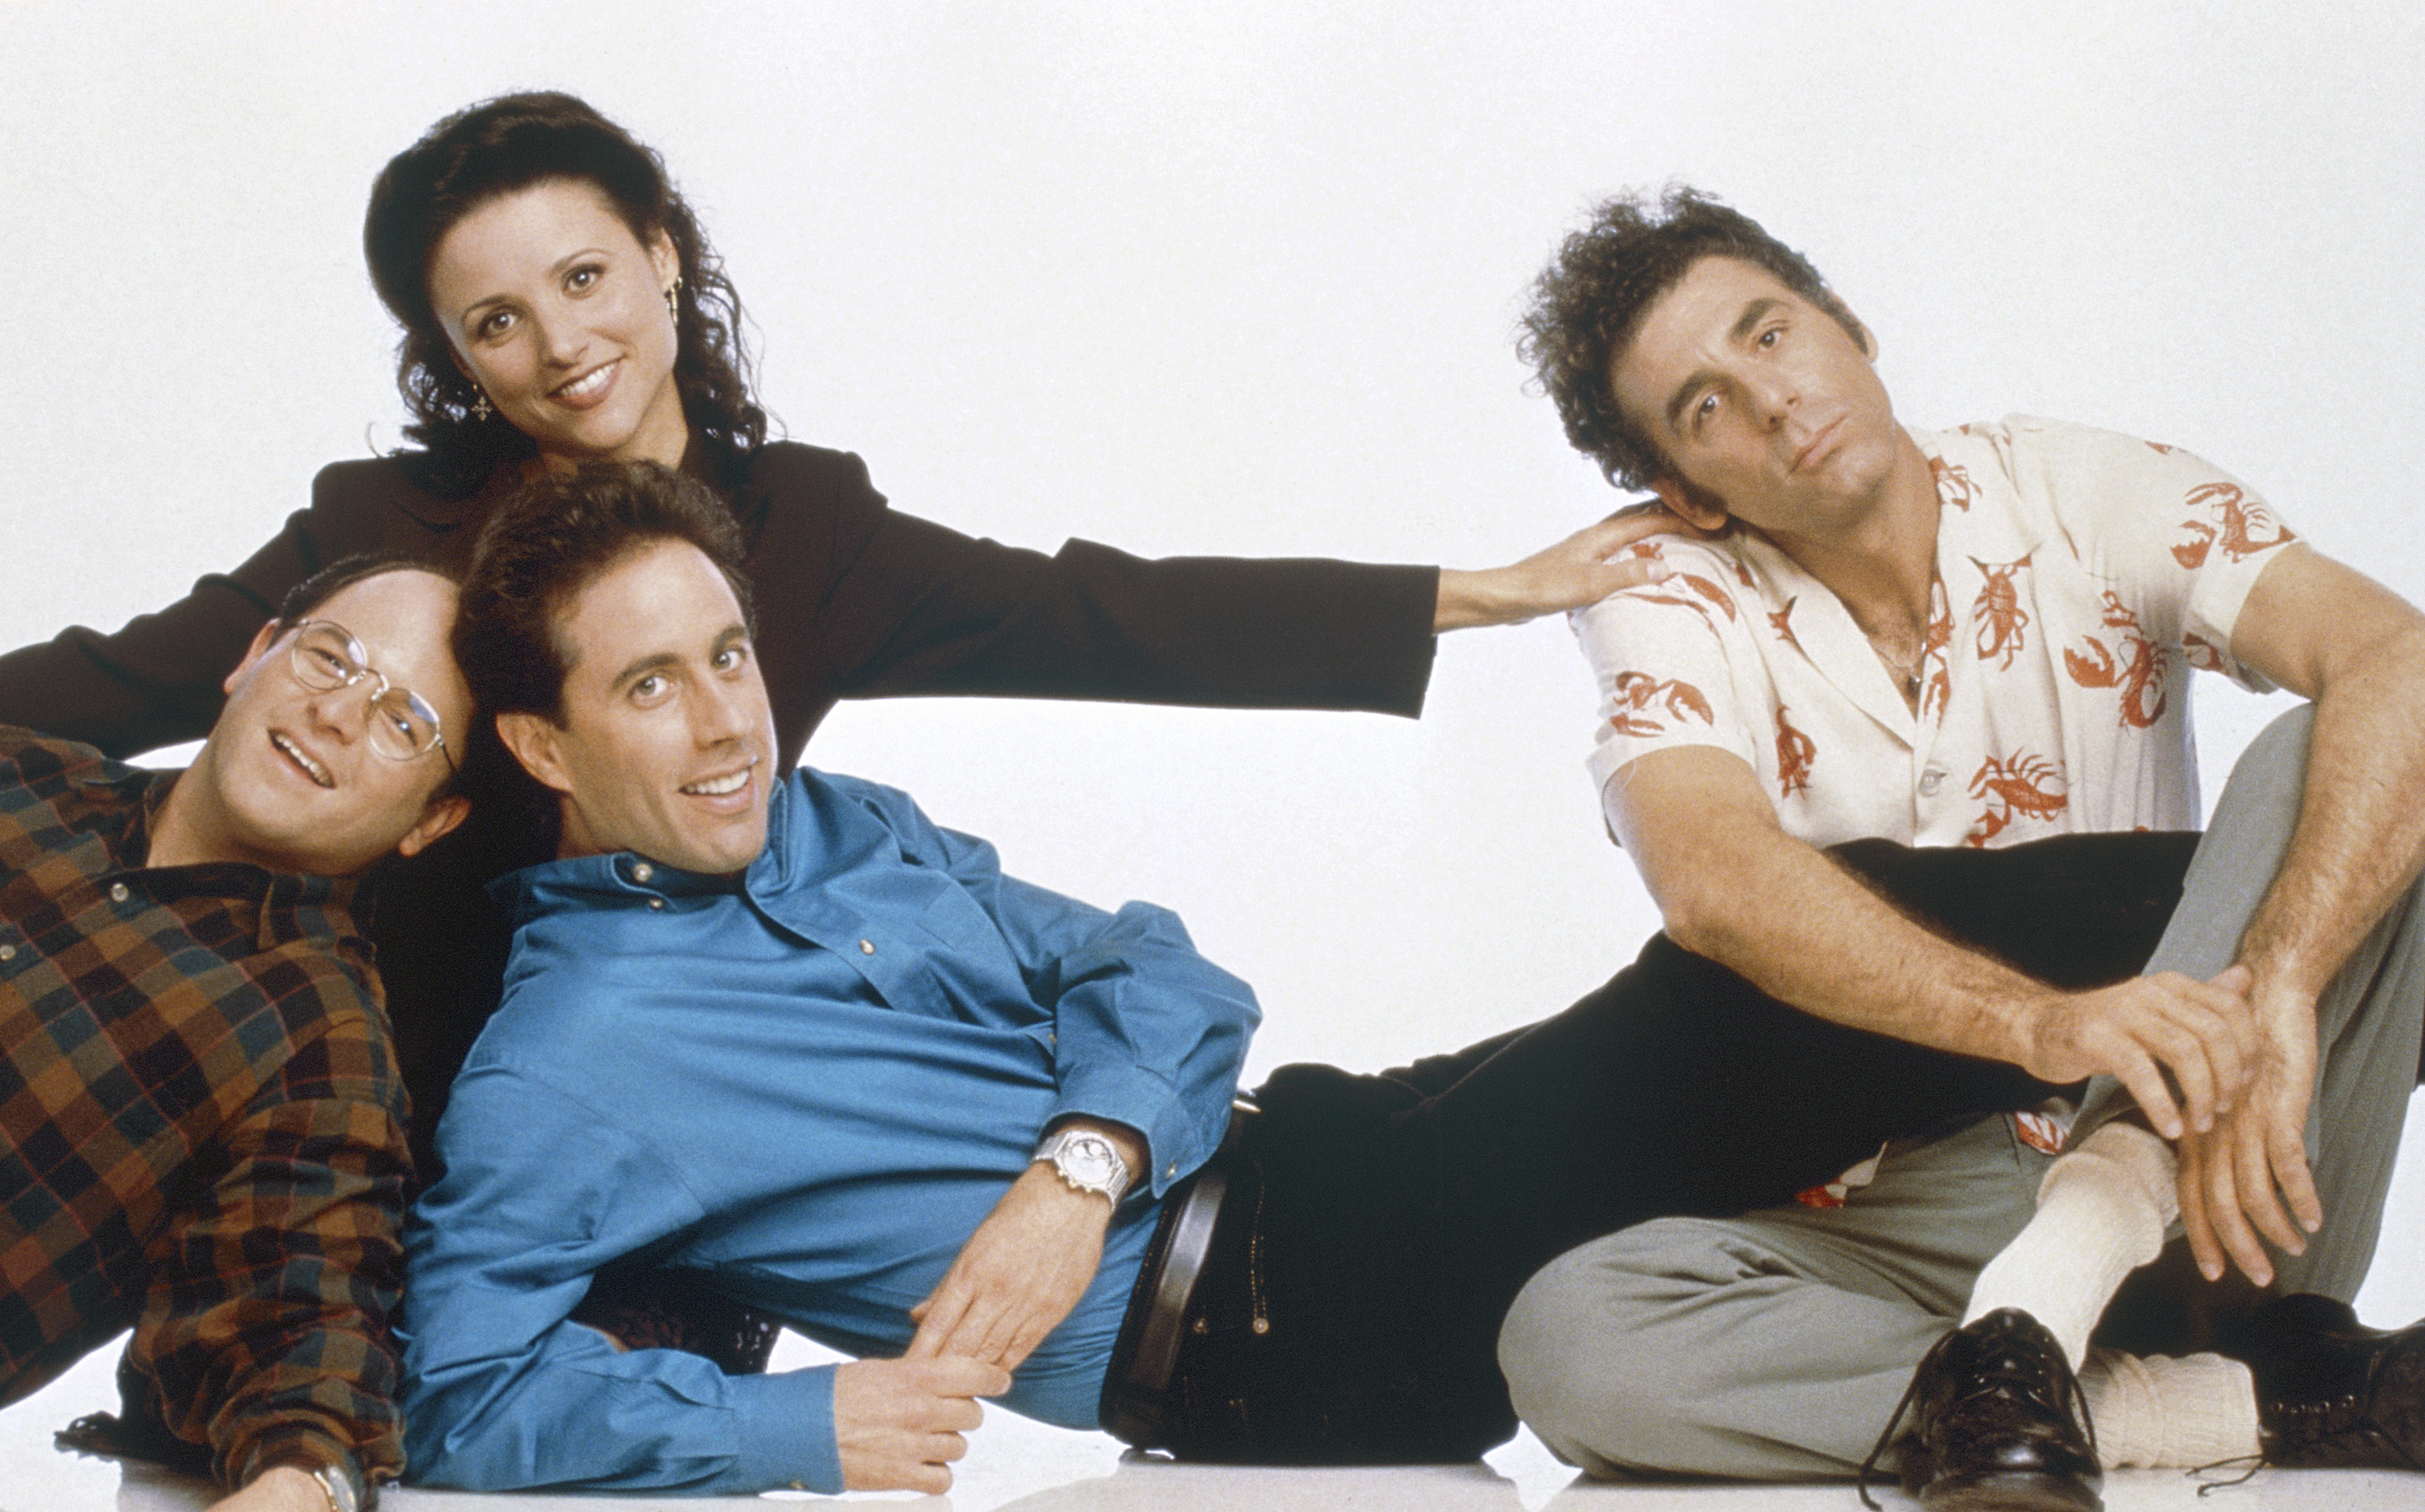 Jason Alexander as George Costanza, Julia Louis-Dreyfus as Elaine Benes, Jerry Seinfeld as Jerry Seinfeld and Michael Richards as Cosmo Kramer